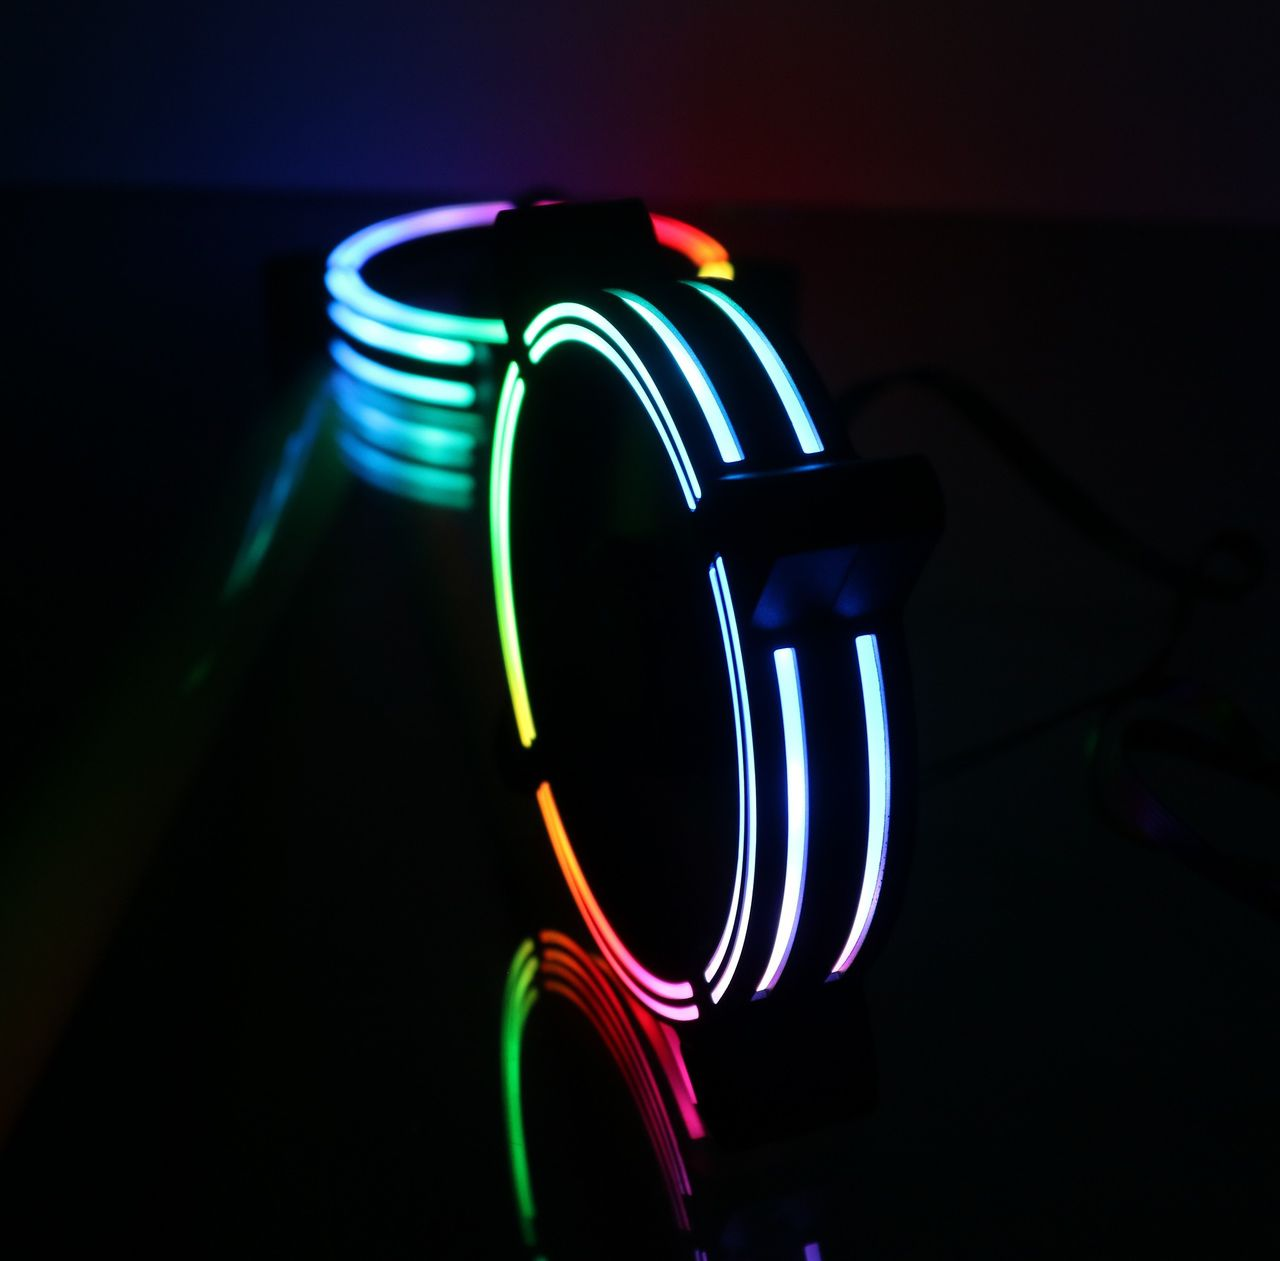 Kit Fan Gamer Rise Mode Tornado MB RGB led (3 Fans) - Loja Rise Mode